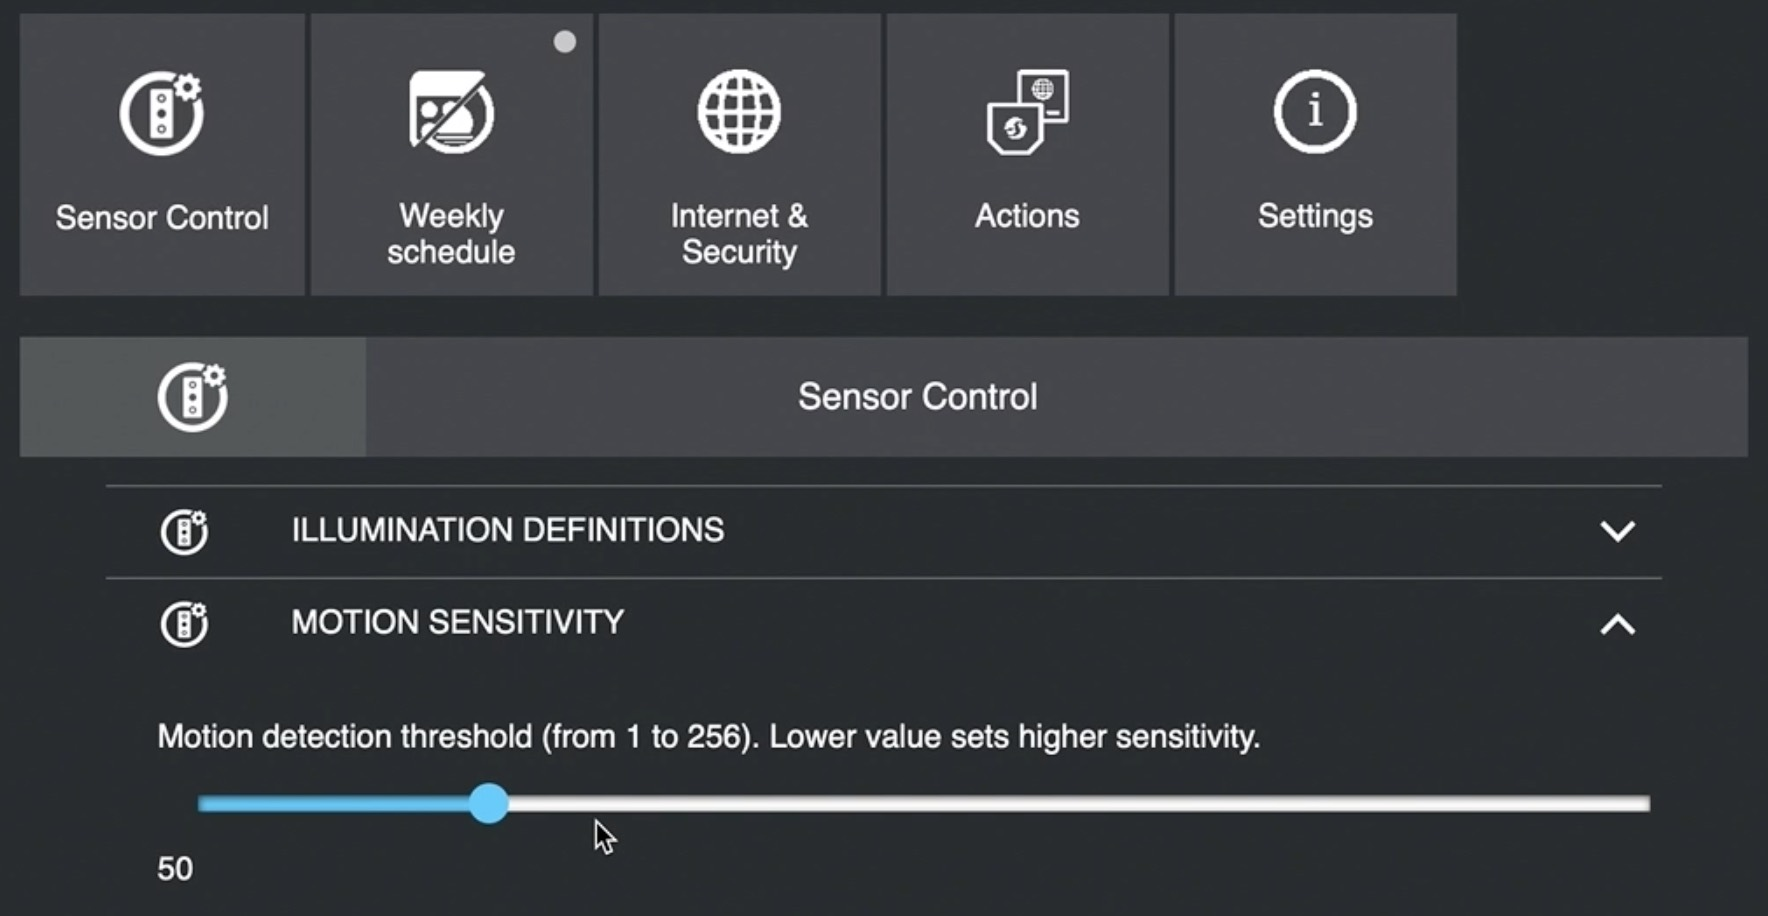 You can adjust the motion detection threshold from 1 to 256 where lower means higher sensitivity